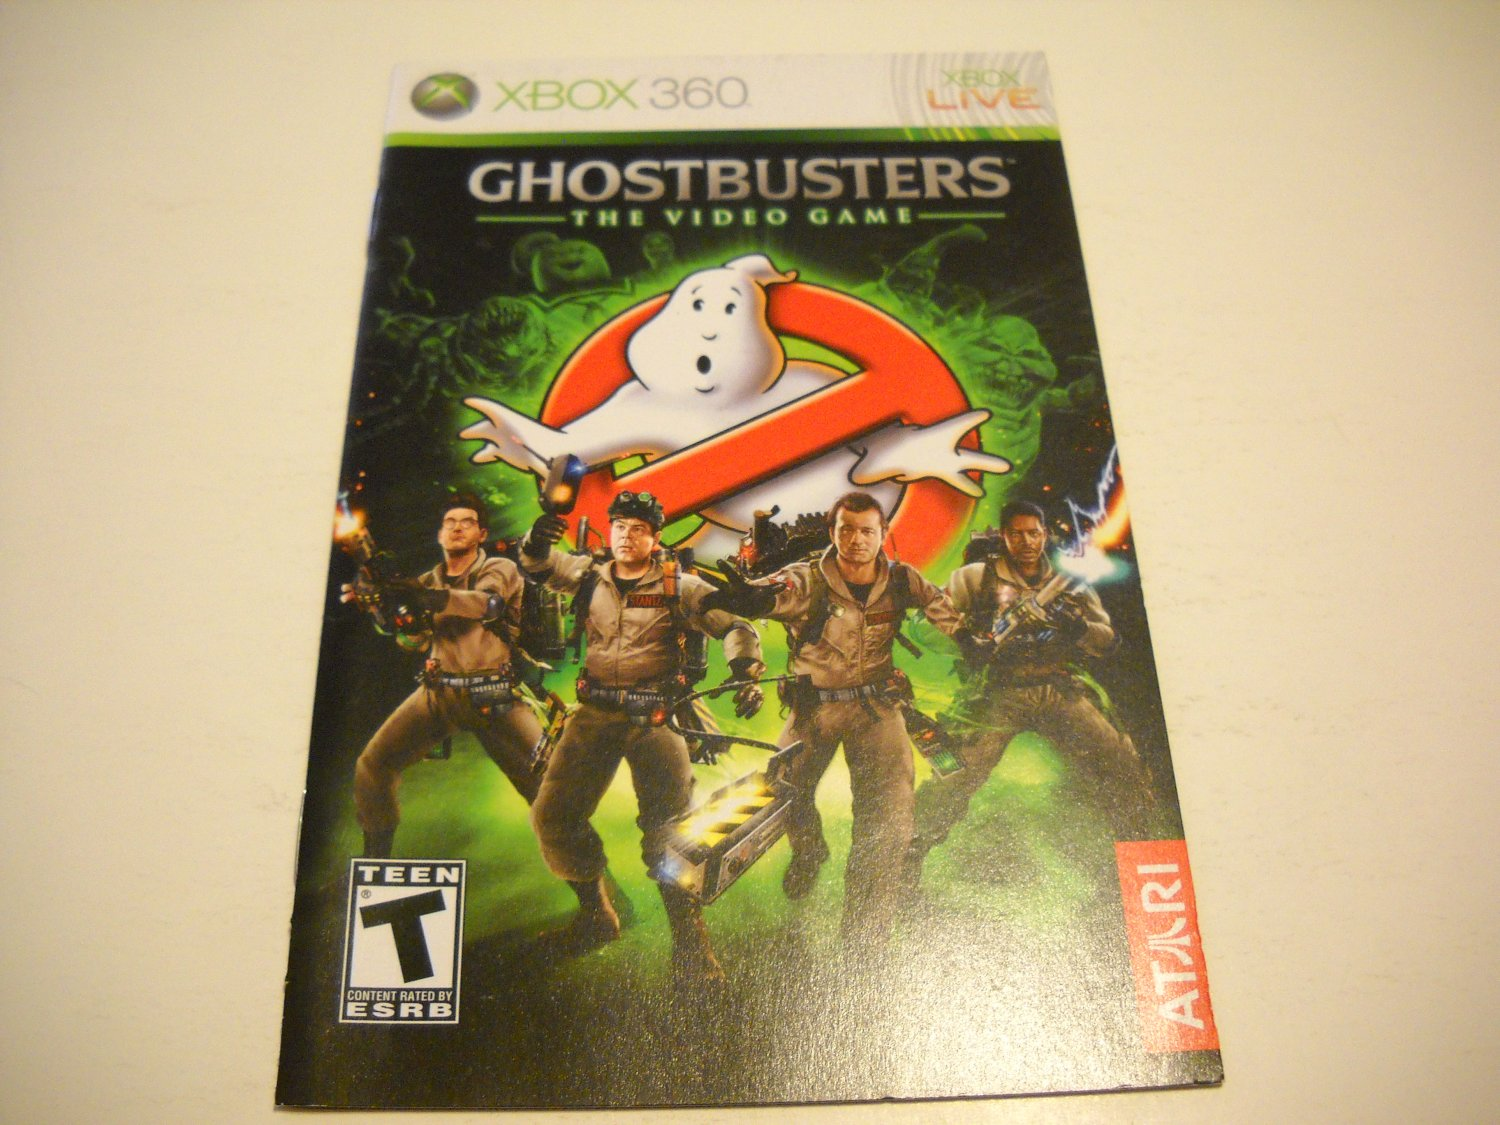 Manual ONLY ~  for Ghostbusters The Video Game   - Xbox 360 Instruction Booklet